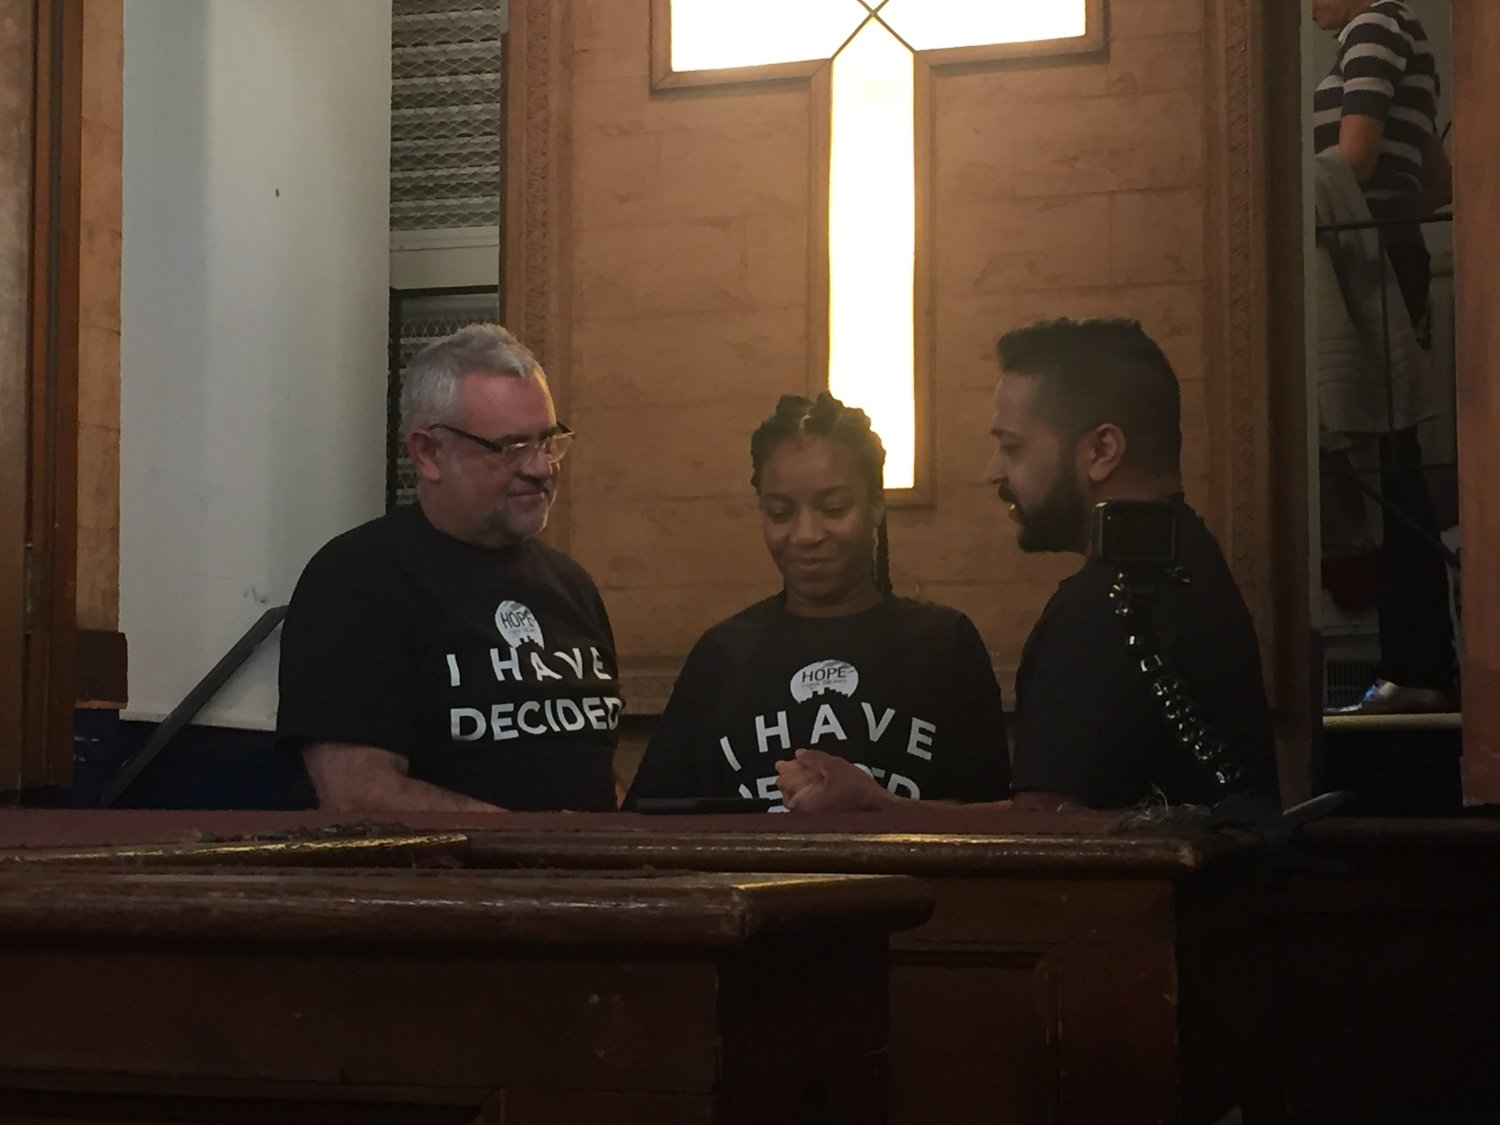 Hope Church Long Island staged its first-ever baptismal service on Oct. 28, two years after its official launch as a church plant. Santiago Bernal, left, and Pastor Finn Varughese, right, prepared to immerse Hofstra student Olukemi Anazodo after she professed her faith in front of the congregation.